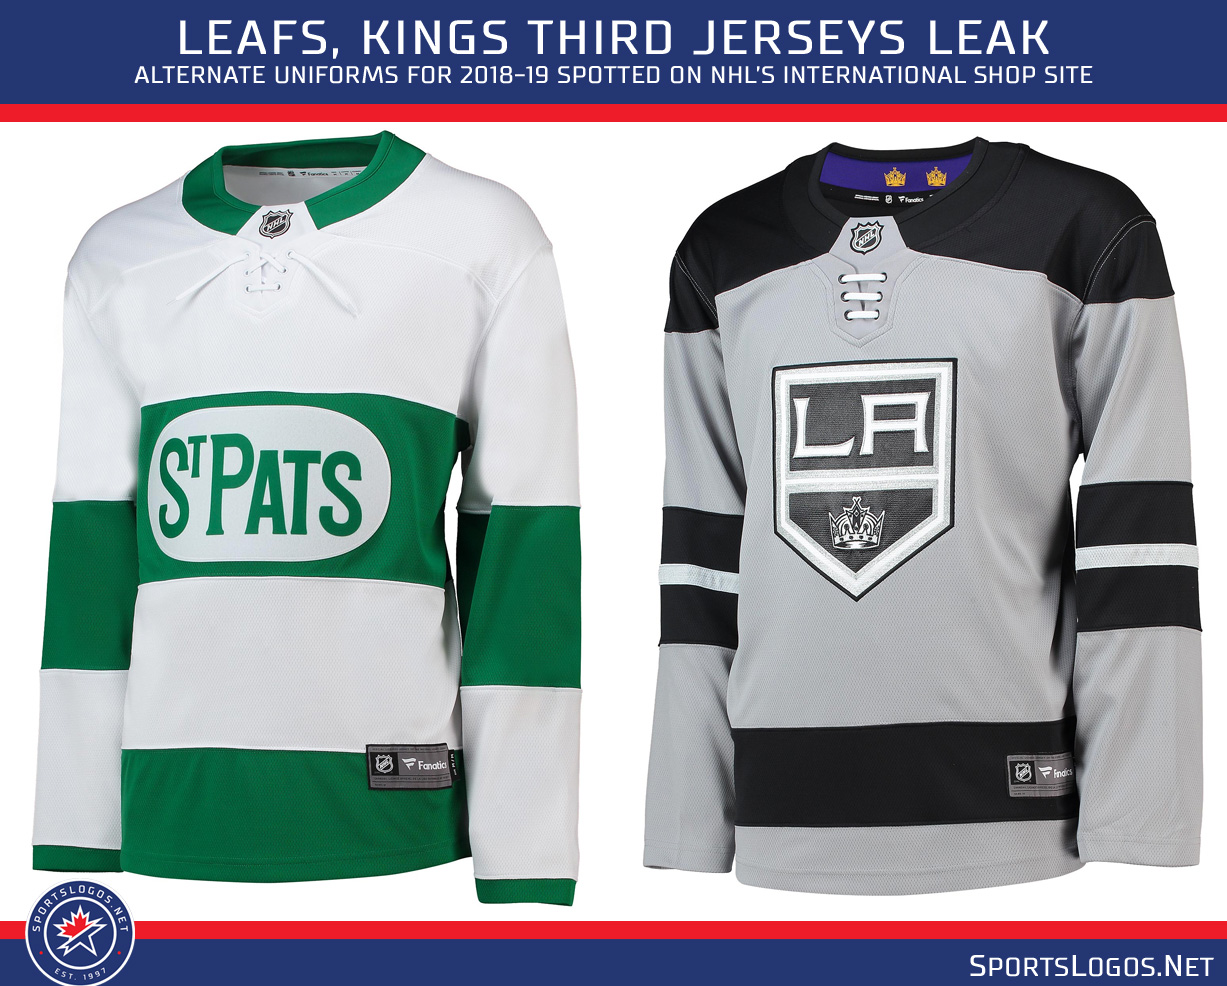 I ve been told the Leafs uniform is not a true third jersey ea3d7f09ecf